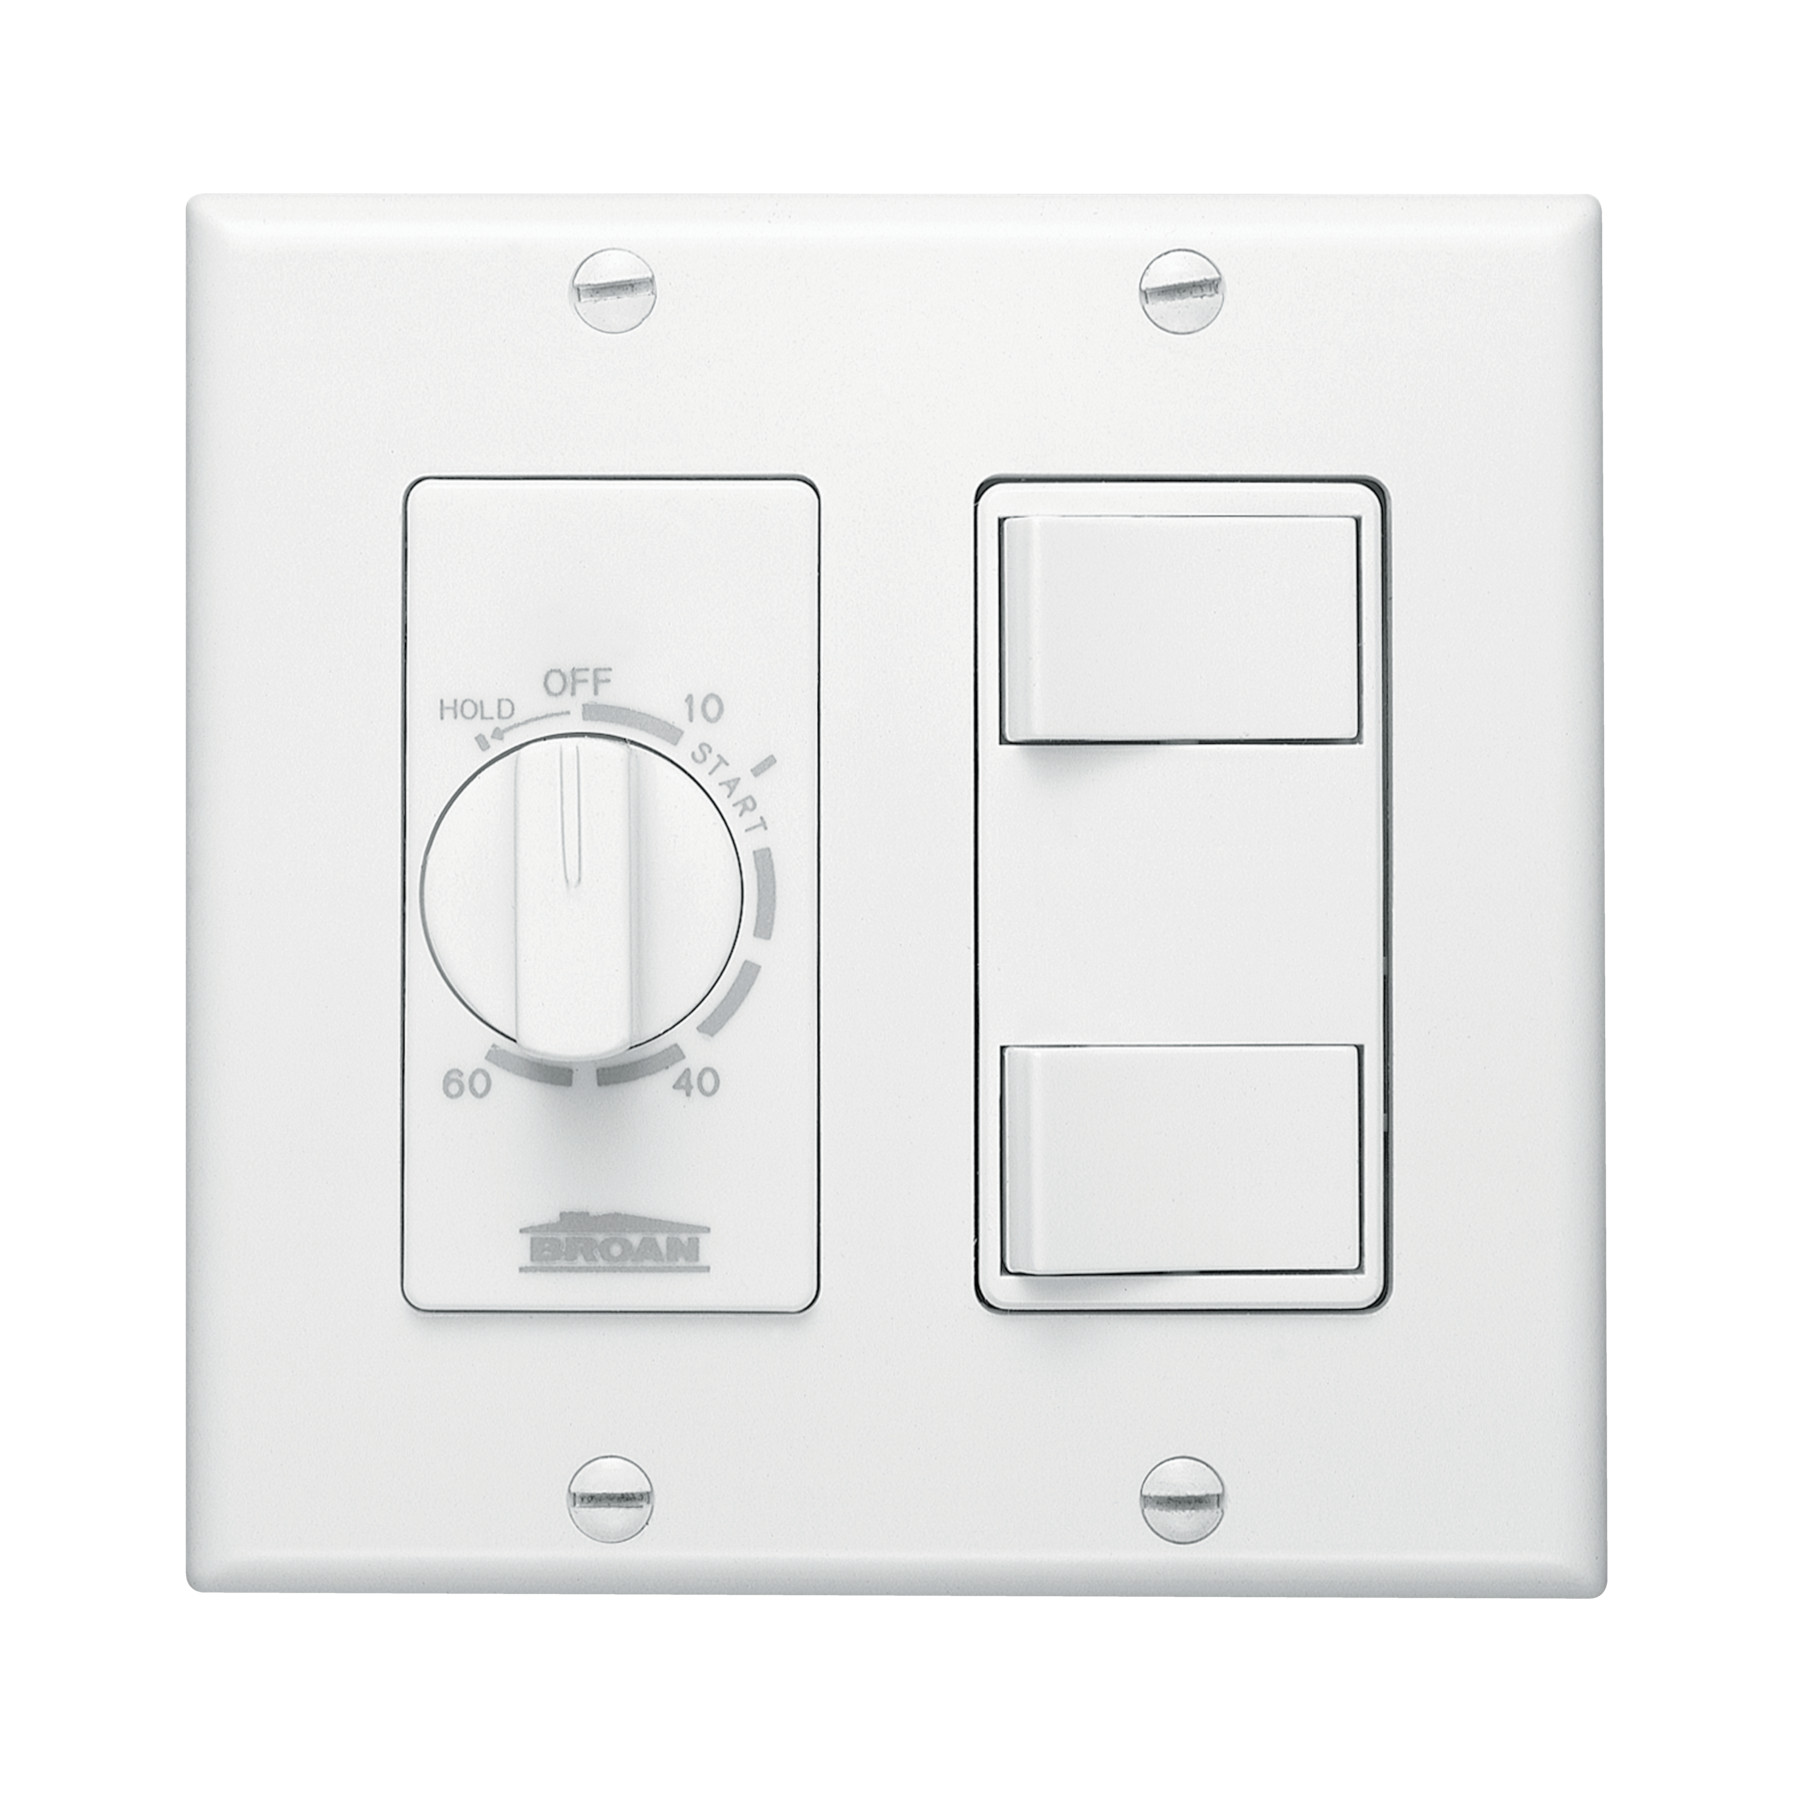 Broan-NuTone® 60-Minute Time Control w/ 2-Rocker Switches, White